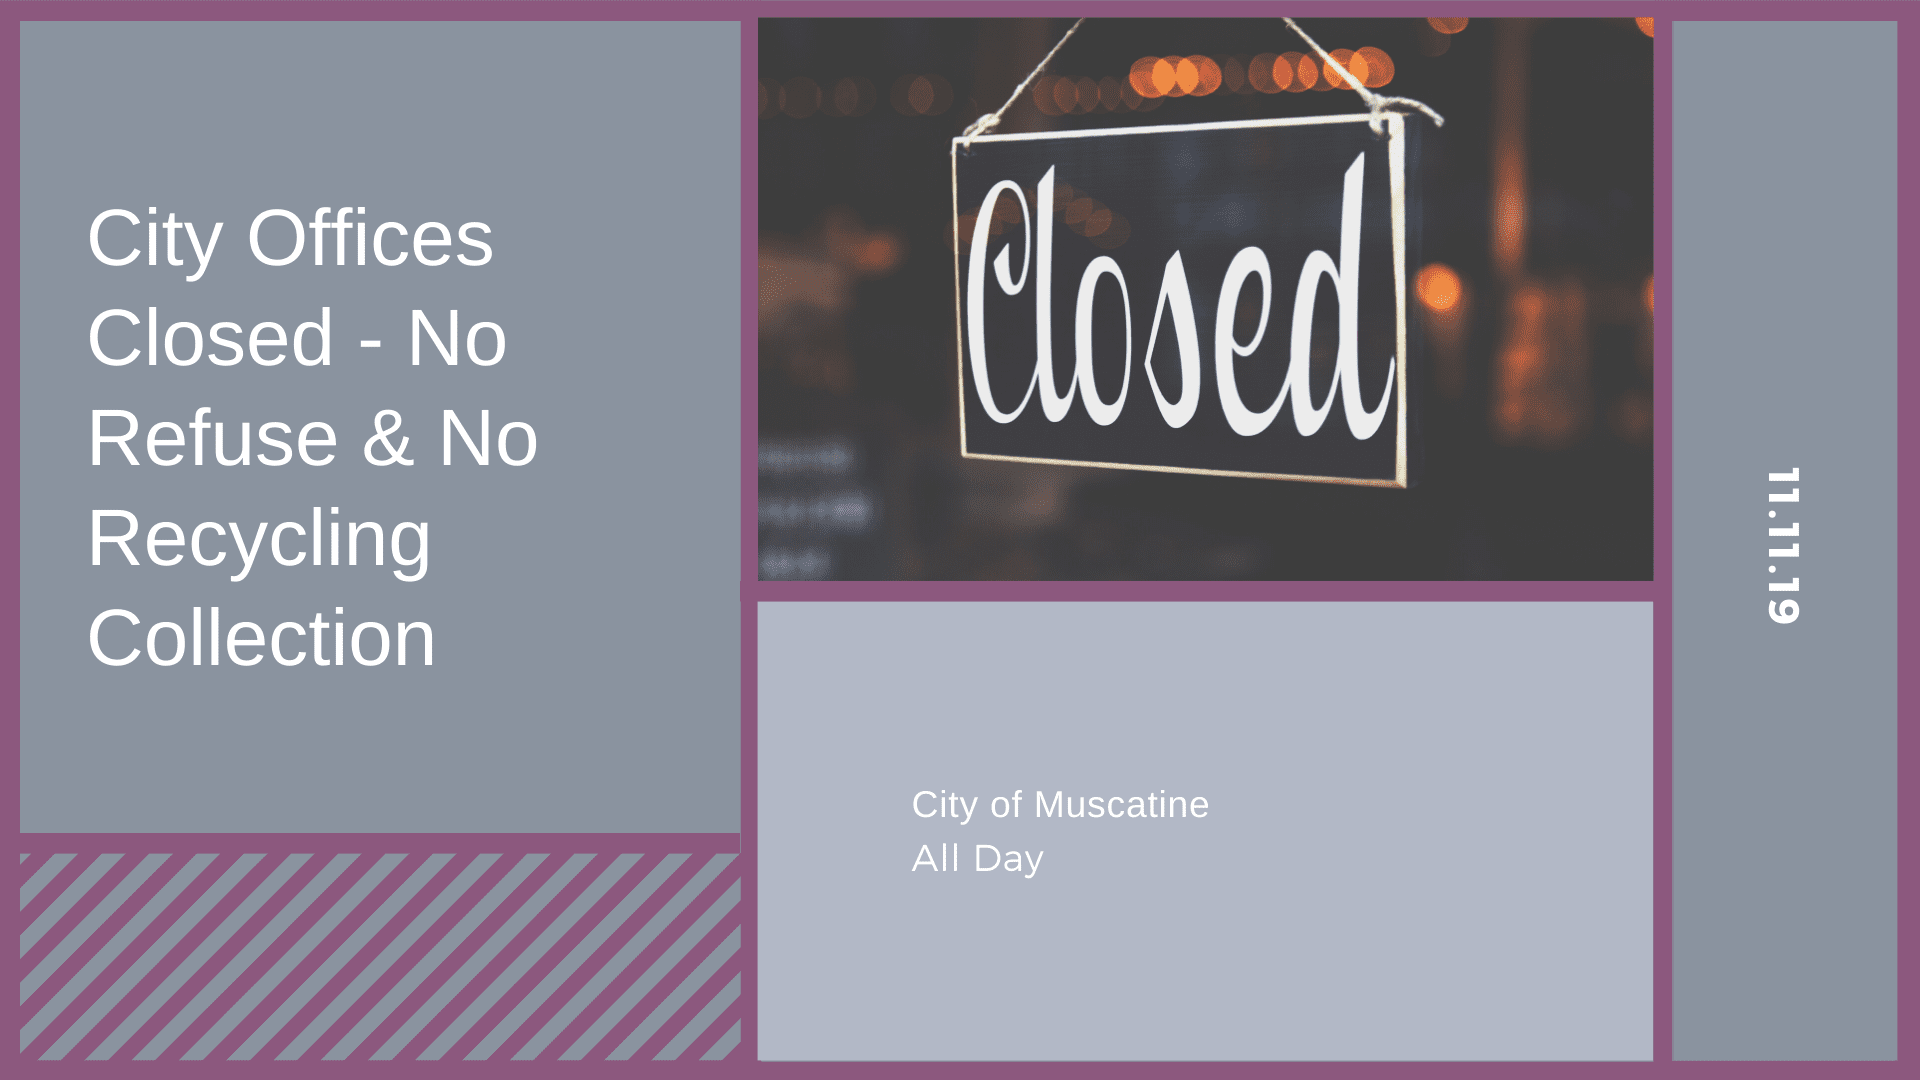 City Offices Closed - No Refuse & No Recycling Collection